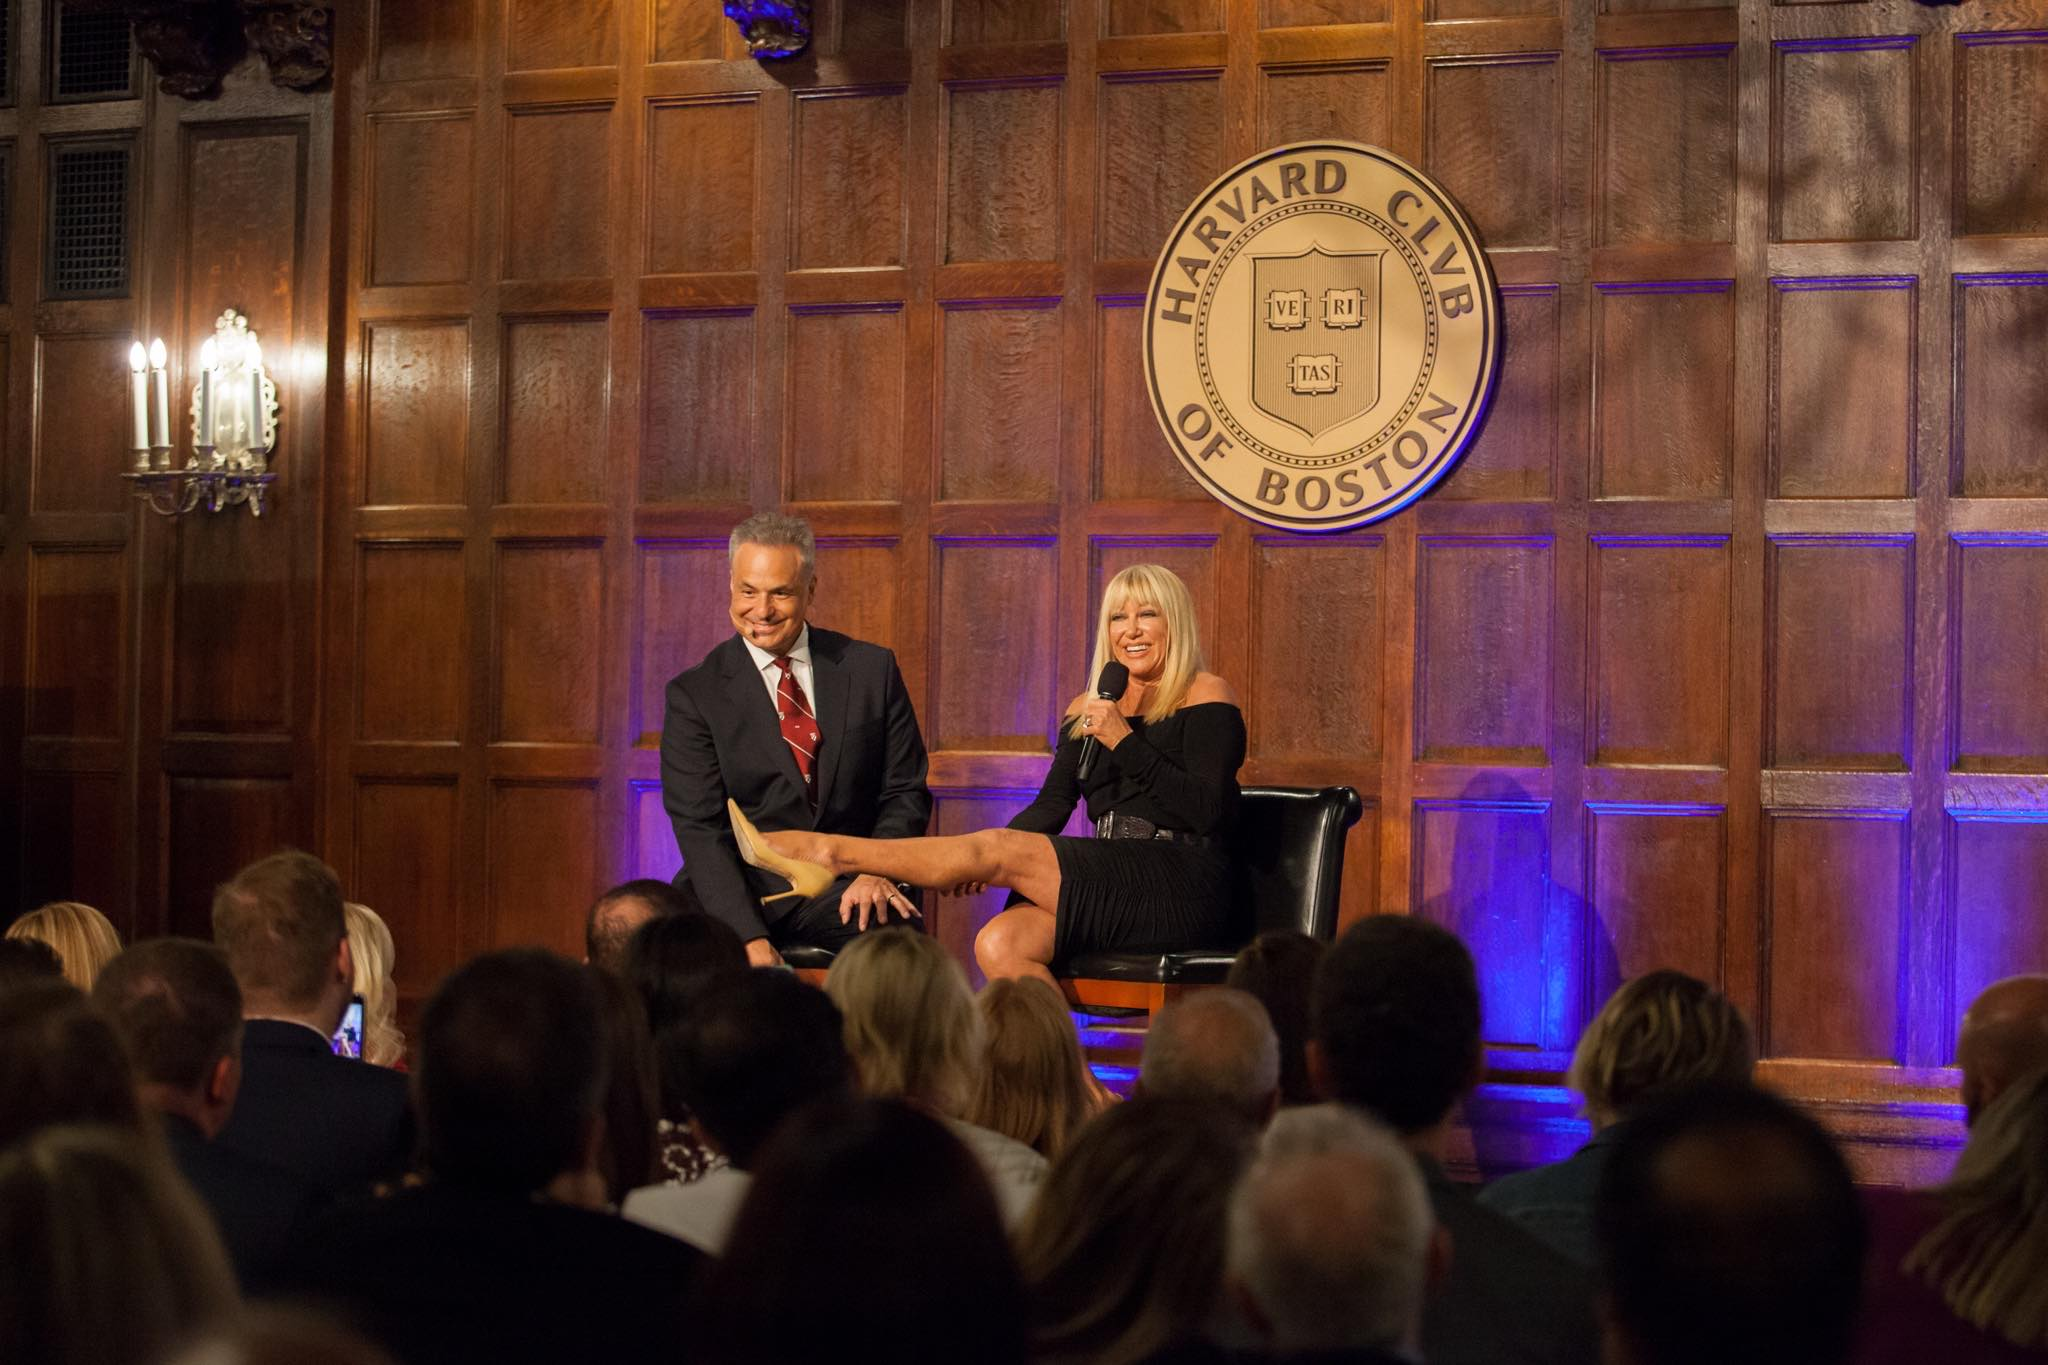 Clint Arthur with Suzanne Somers at Harvard Club of Boston